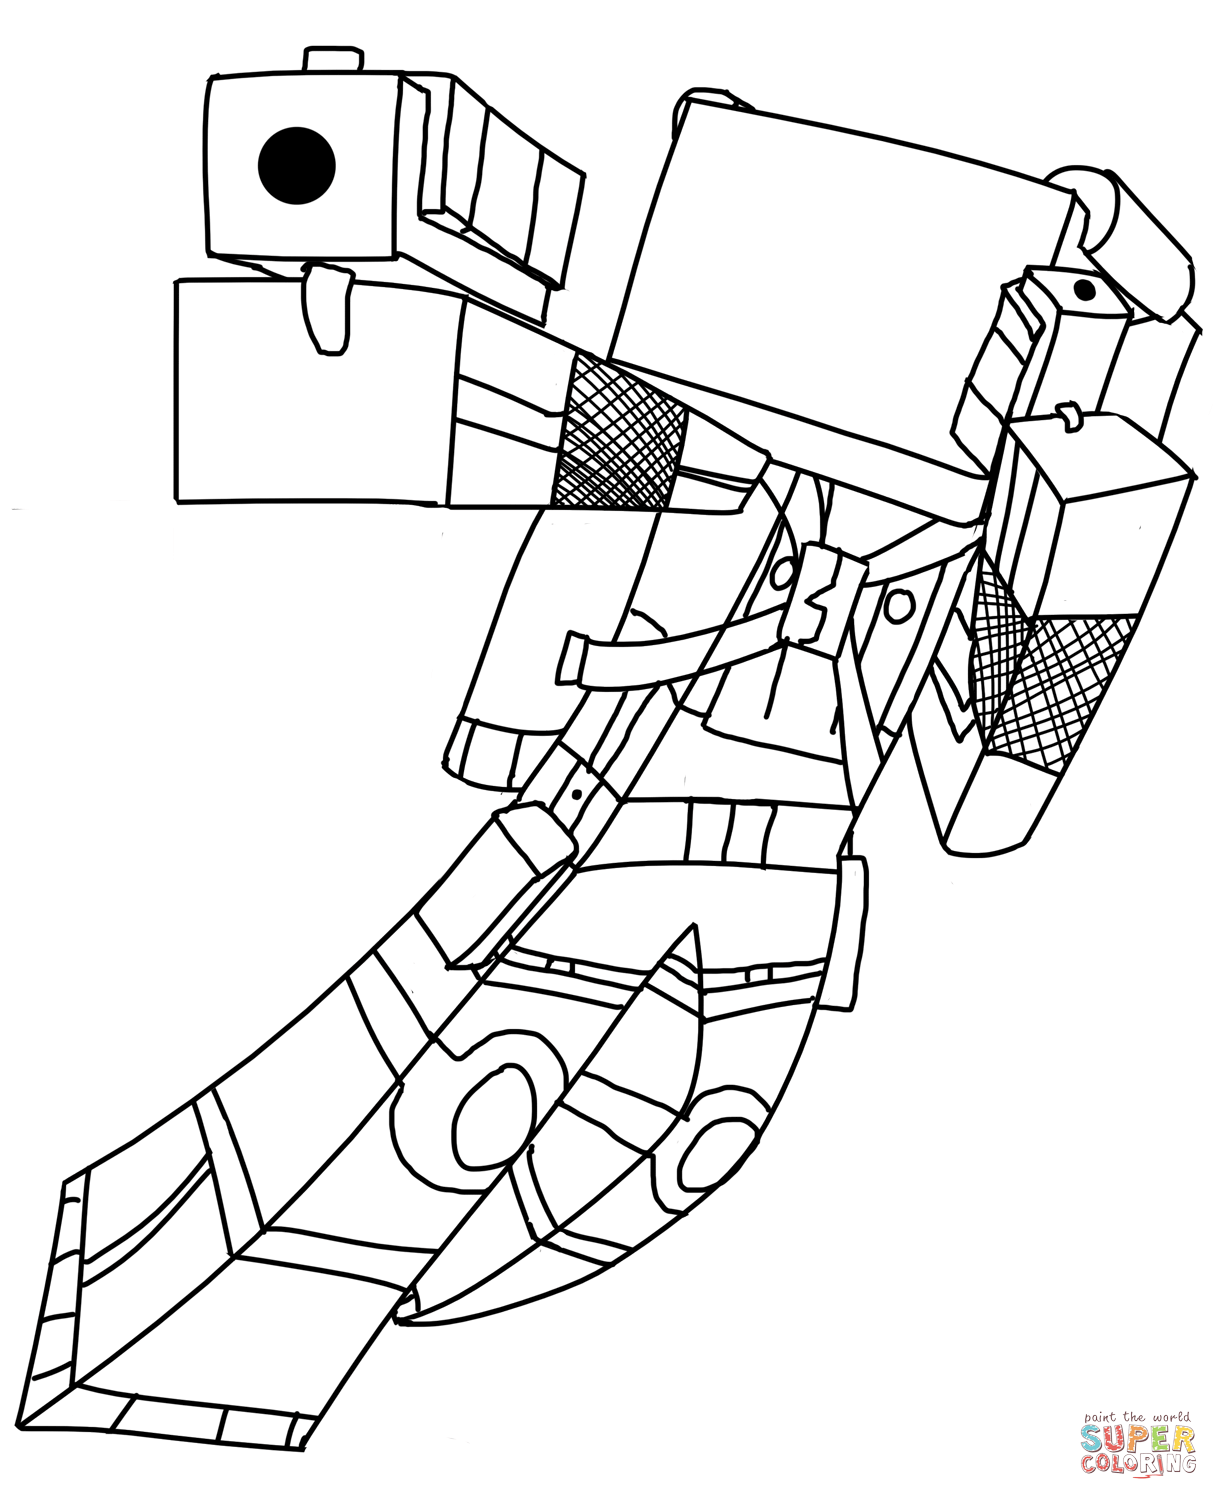 coloring pages minecraft minecraft coloring pages at getcoloringscom free pages minecraft coloring